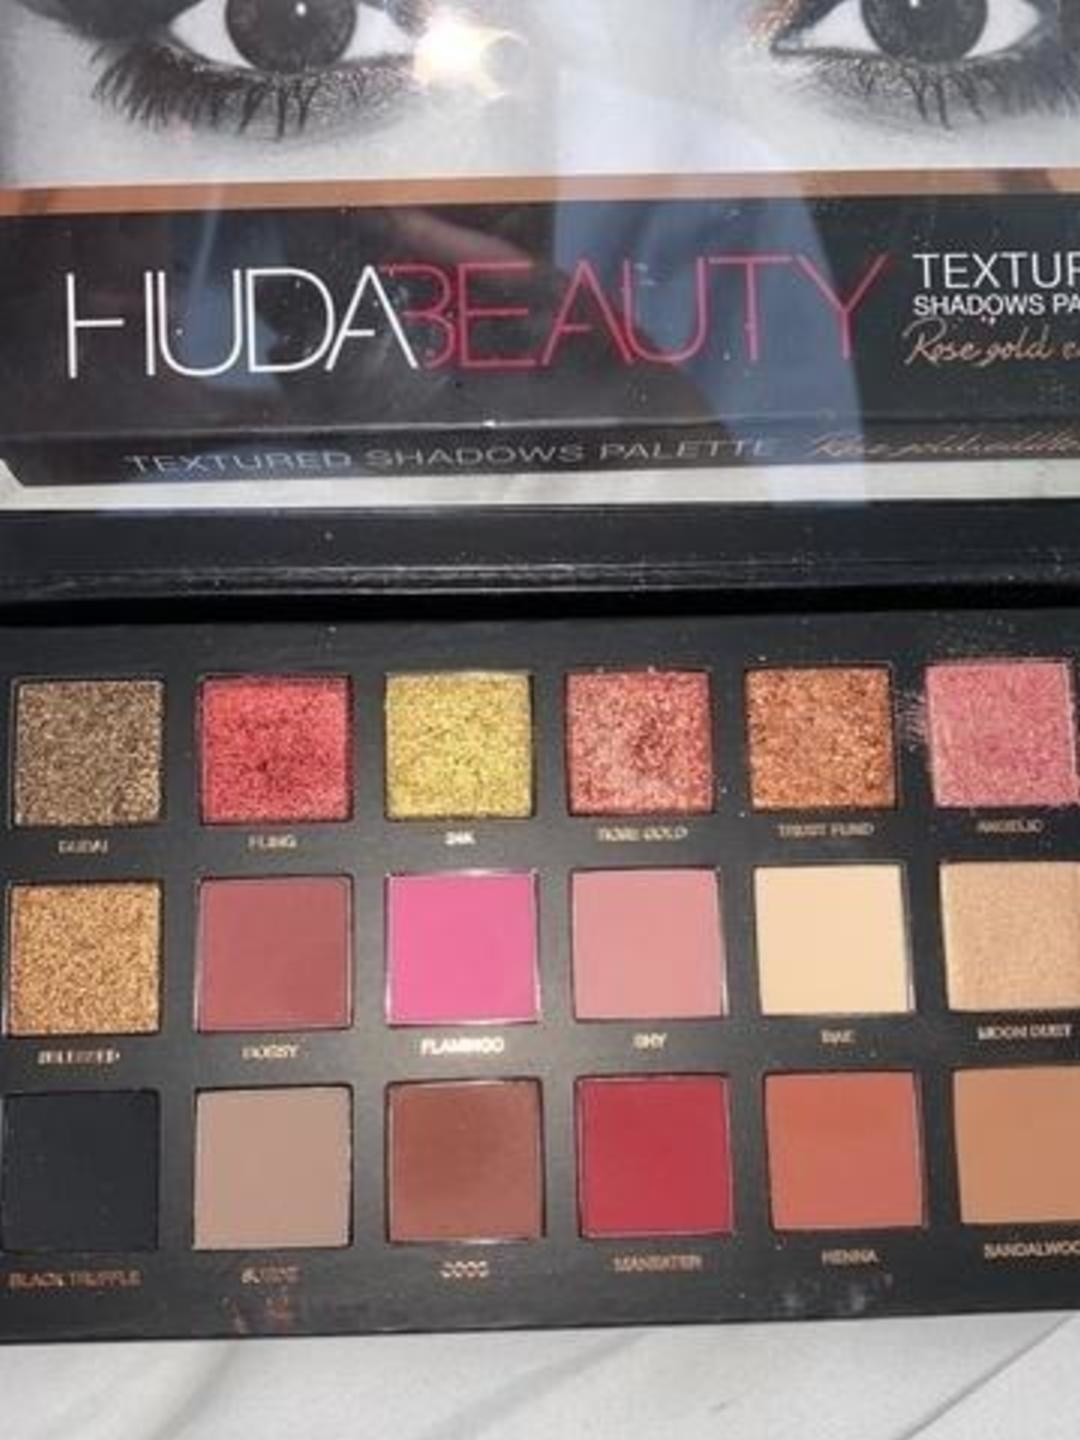 Damen kosmetik & schönheit - HUDA BEAUTY photo 3